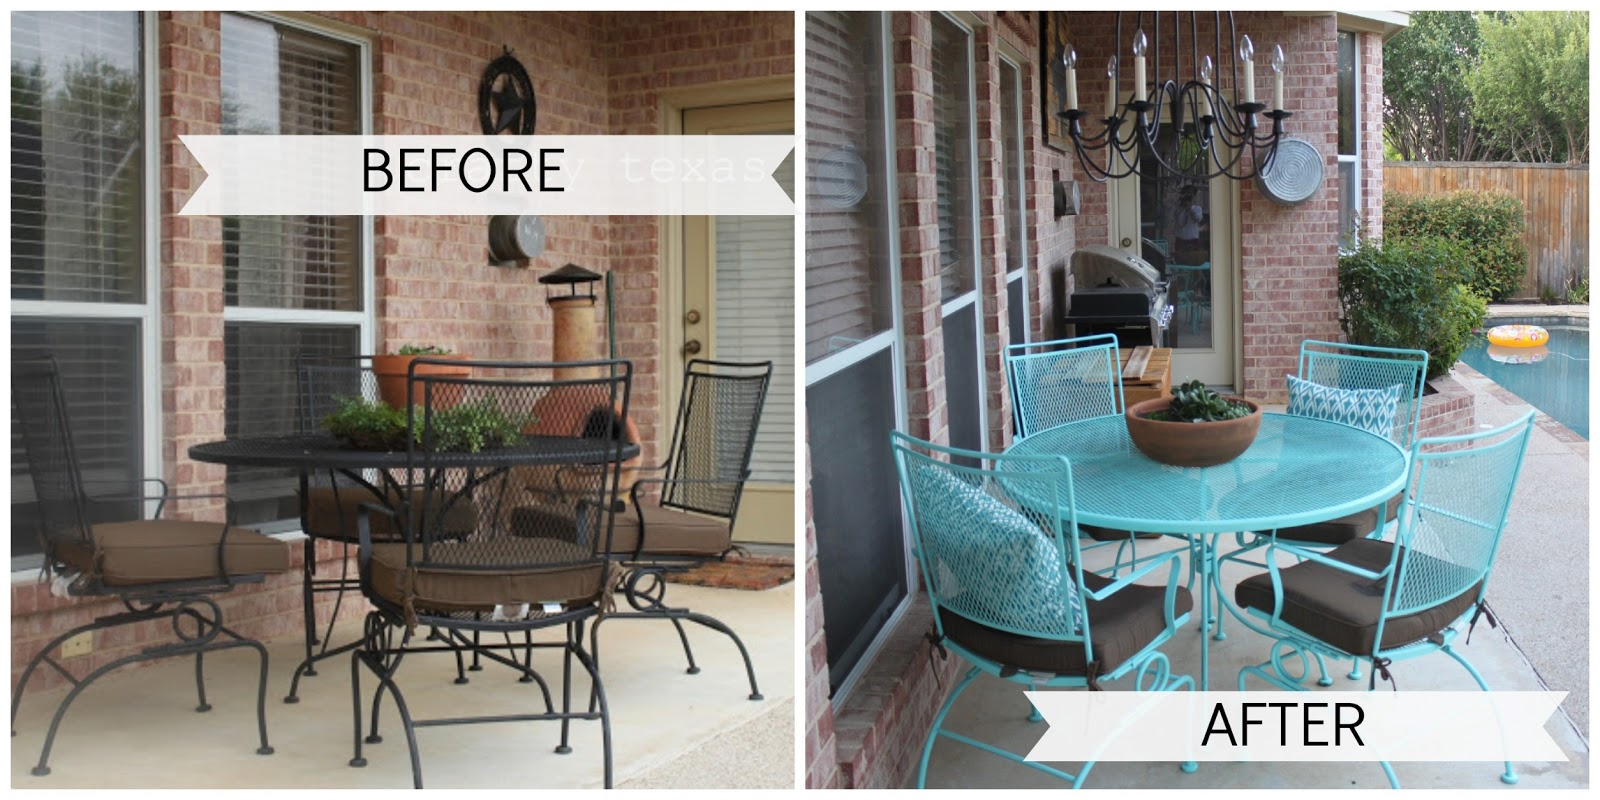 Crafty Texas Girls: Painted Patio Furniture